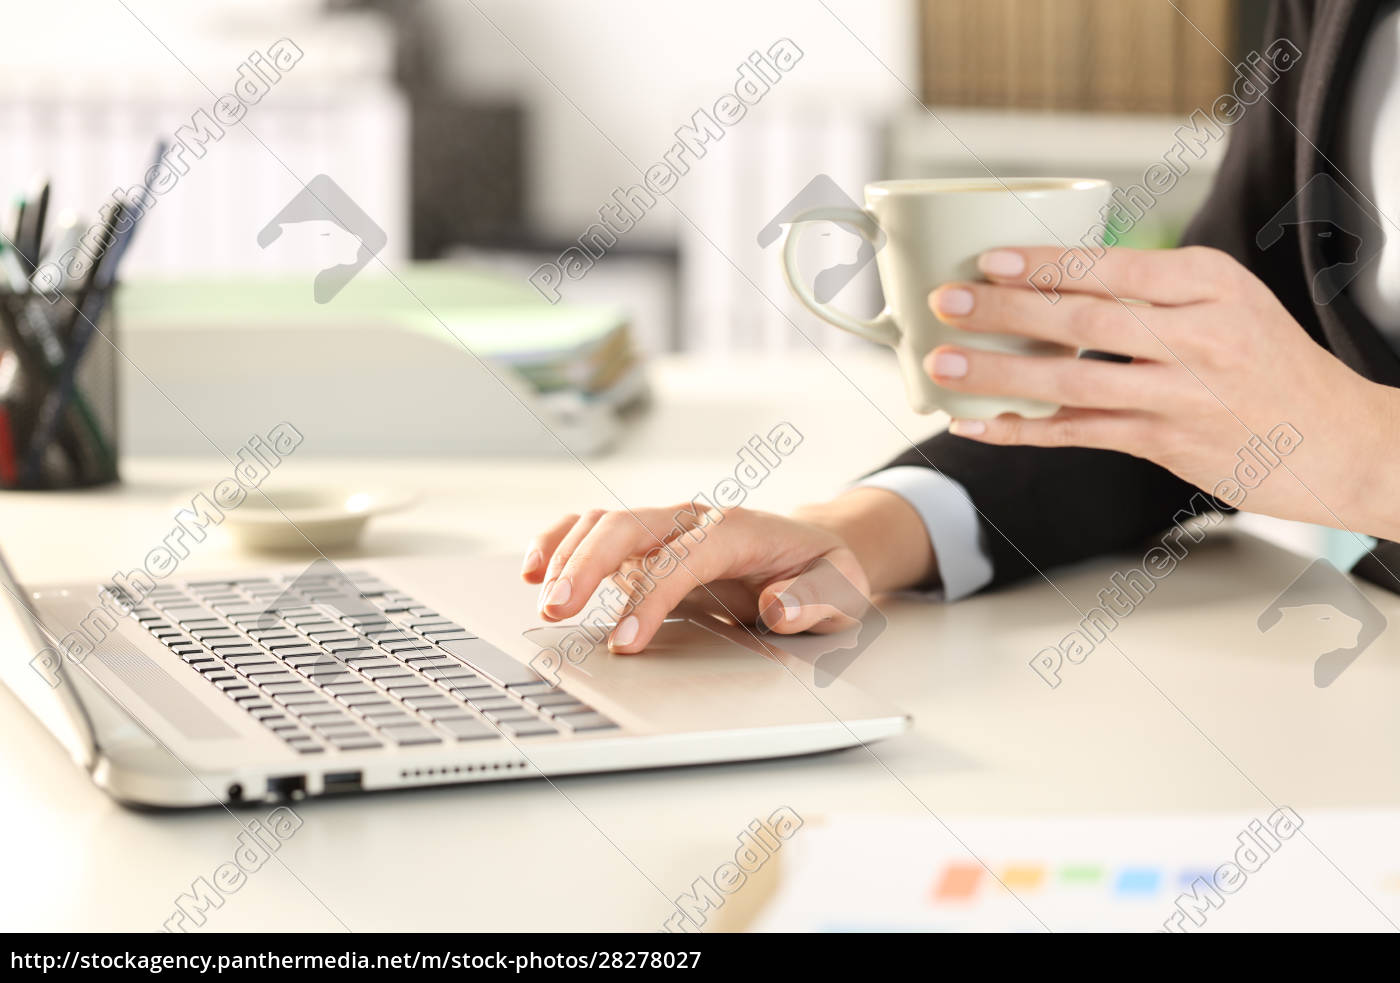 executive, hand, using, laptop, holding, a - 28278027